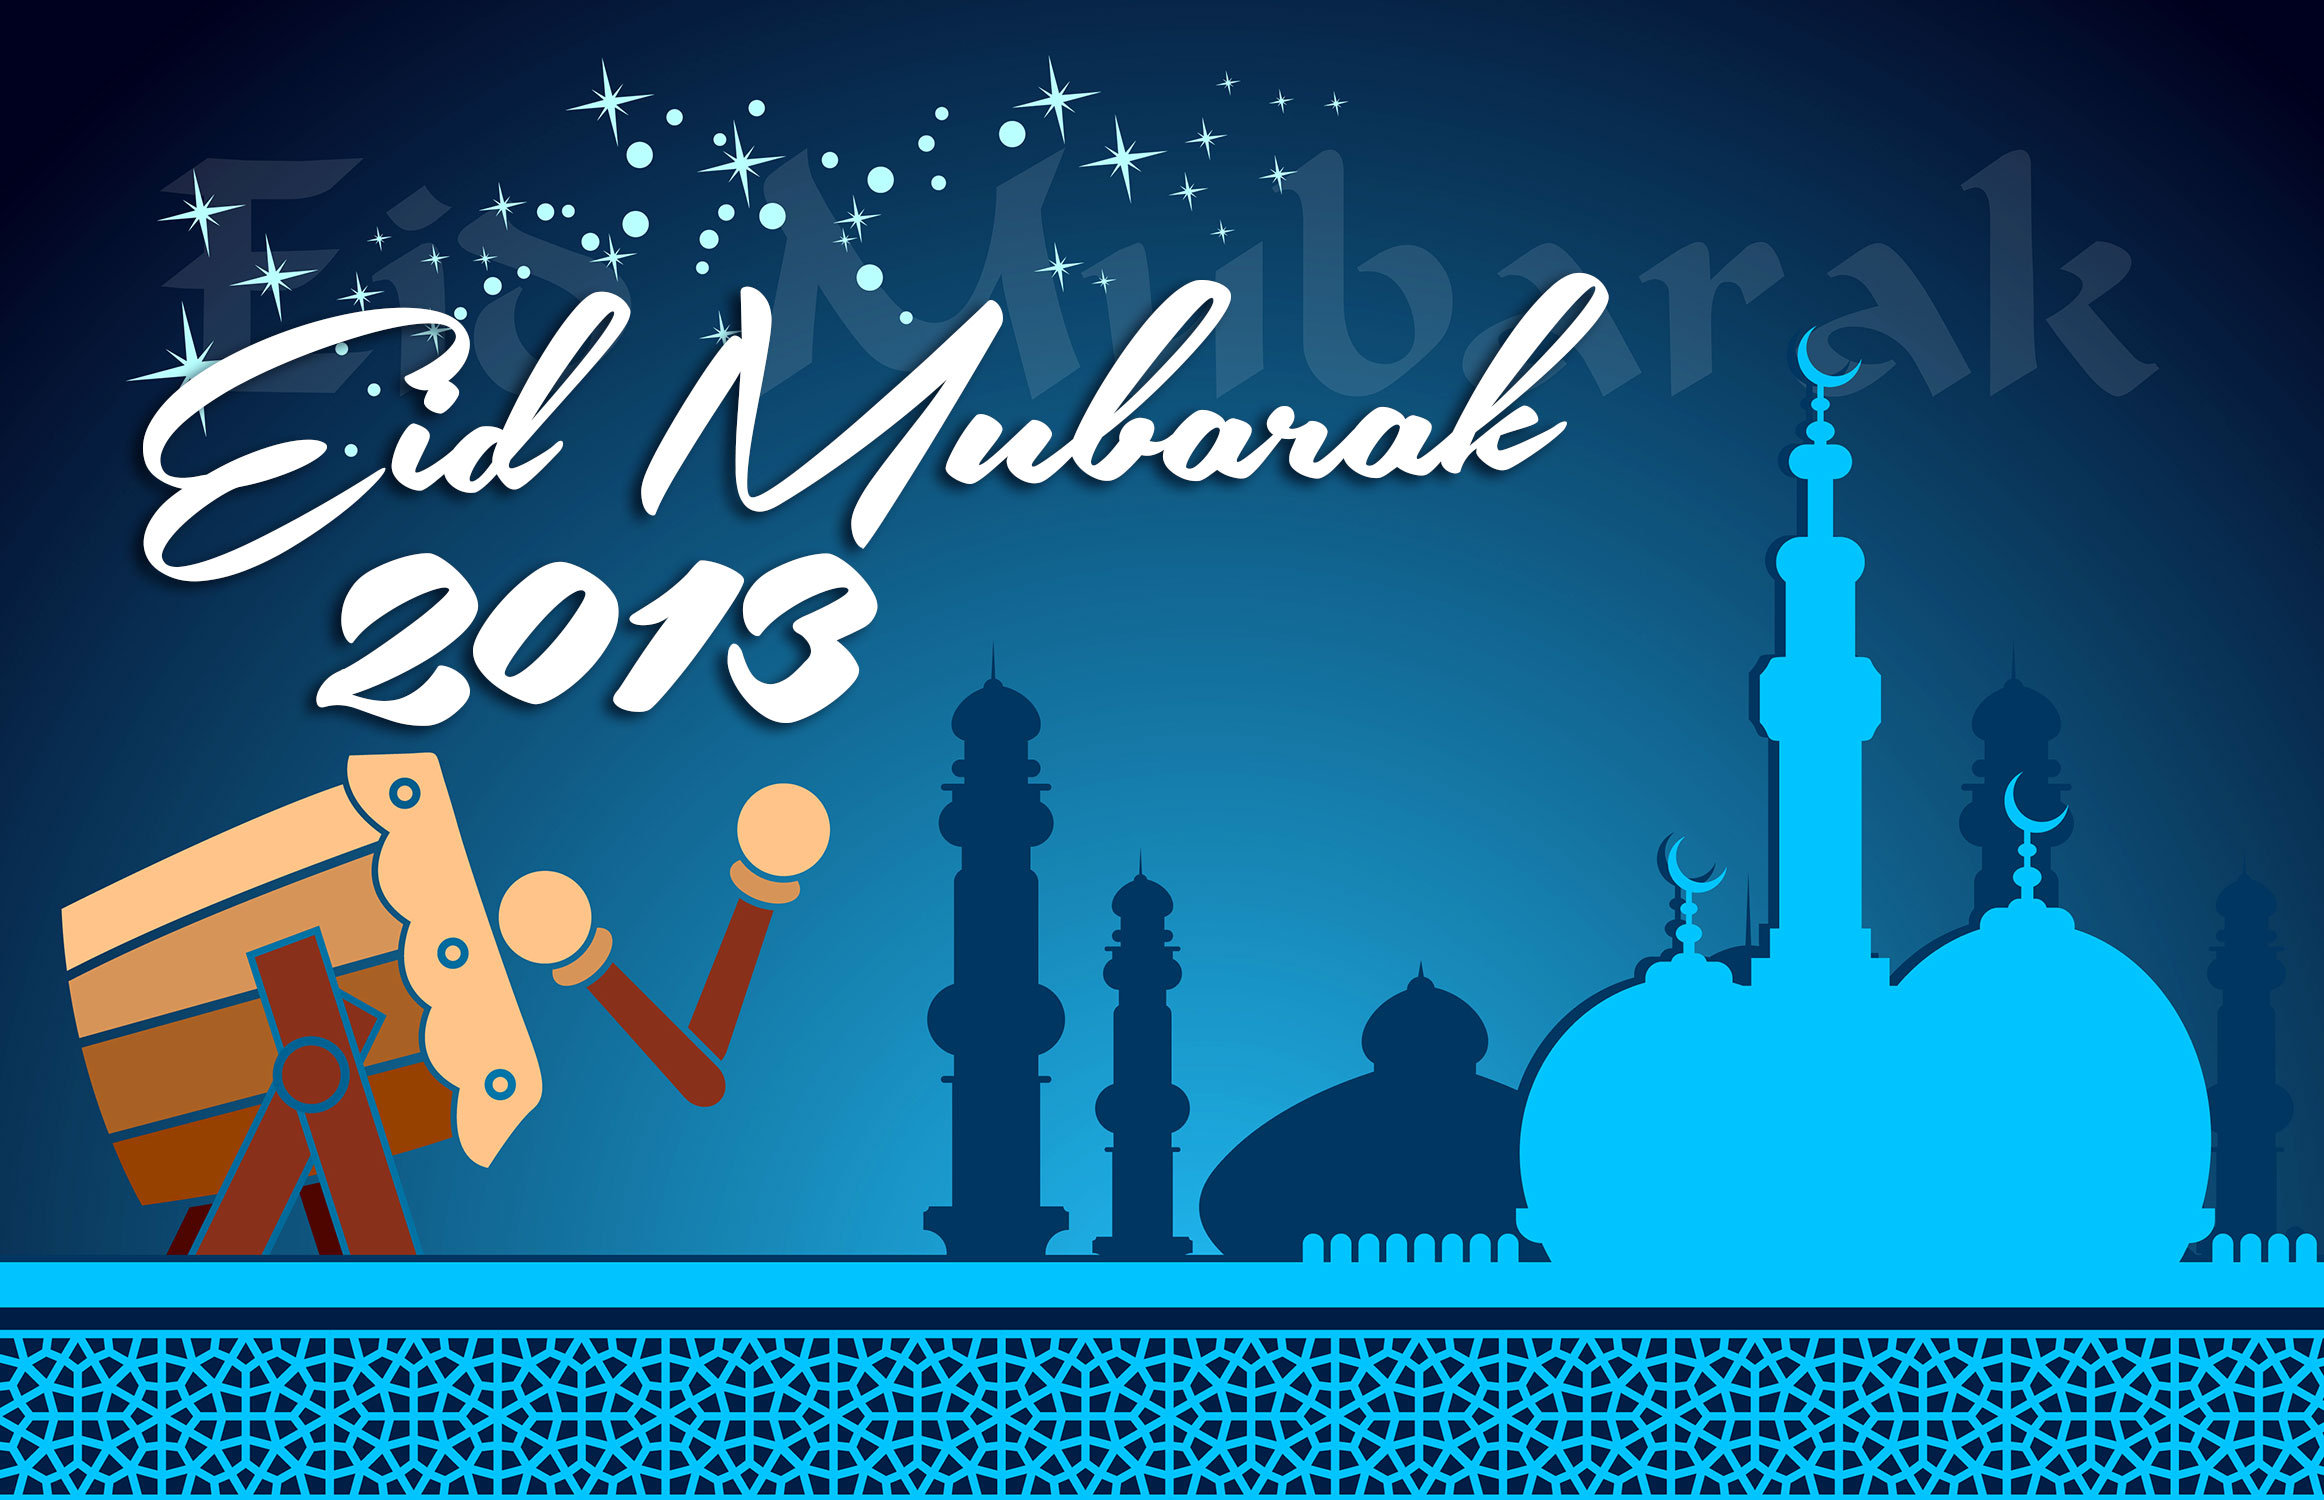 Lovely Eid Mubarak 2013 Greetings Walpapers Posters Technology